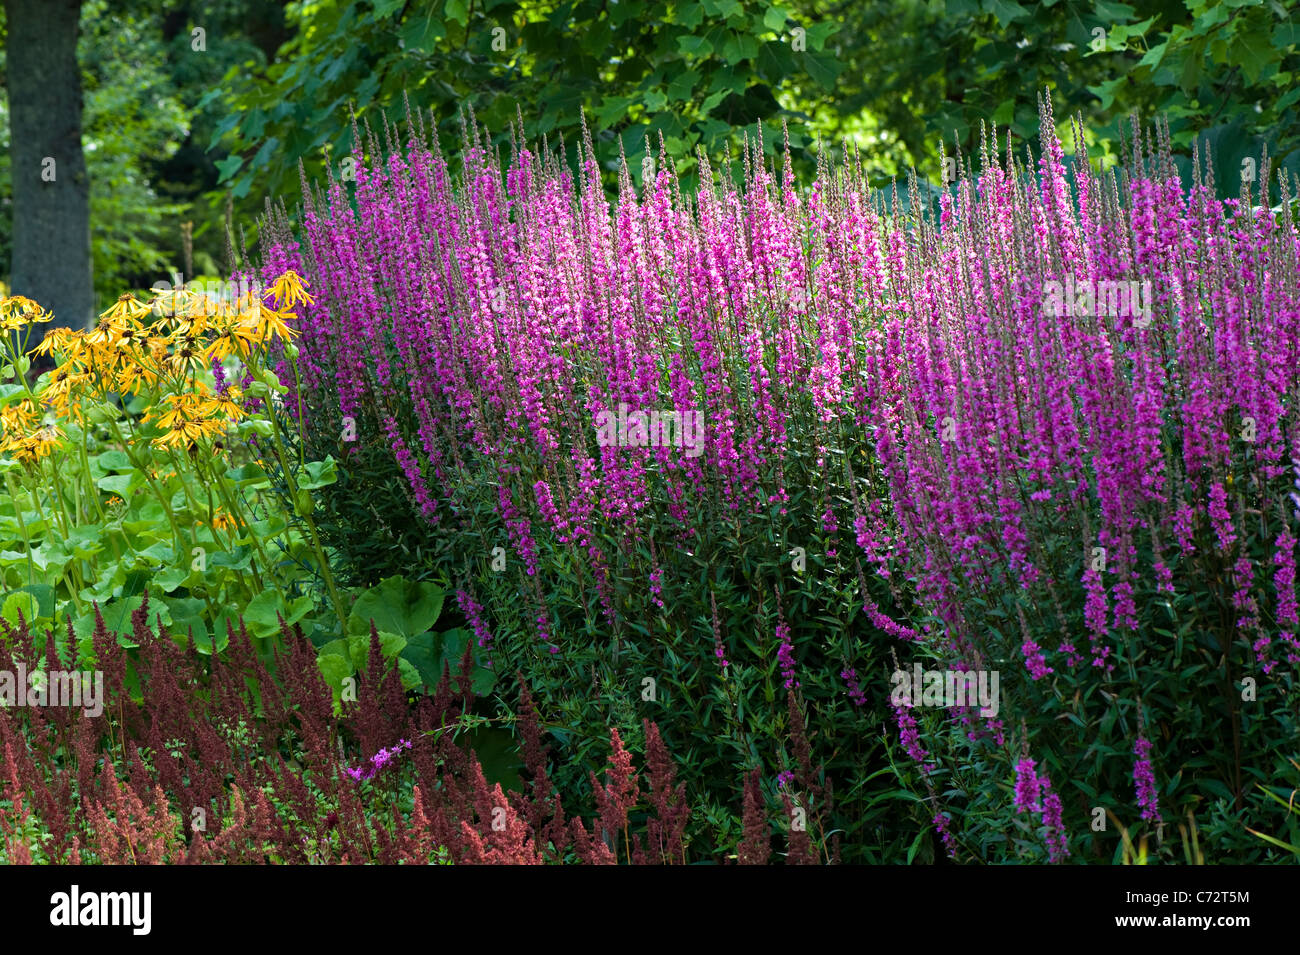 Close-up sunny image of Purple salvia flowers in an herbaceous border. - Stock Image